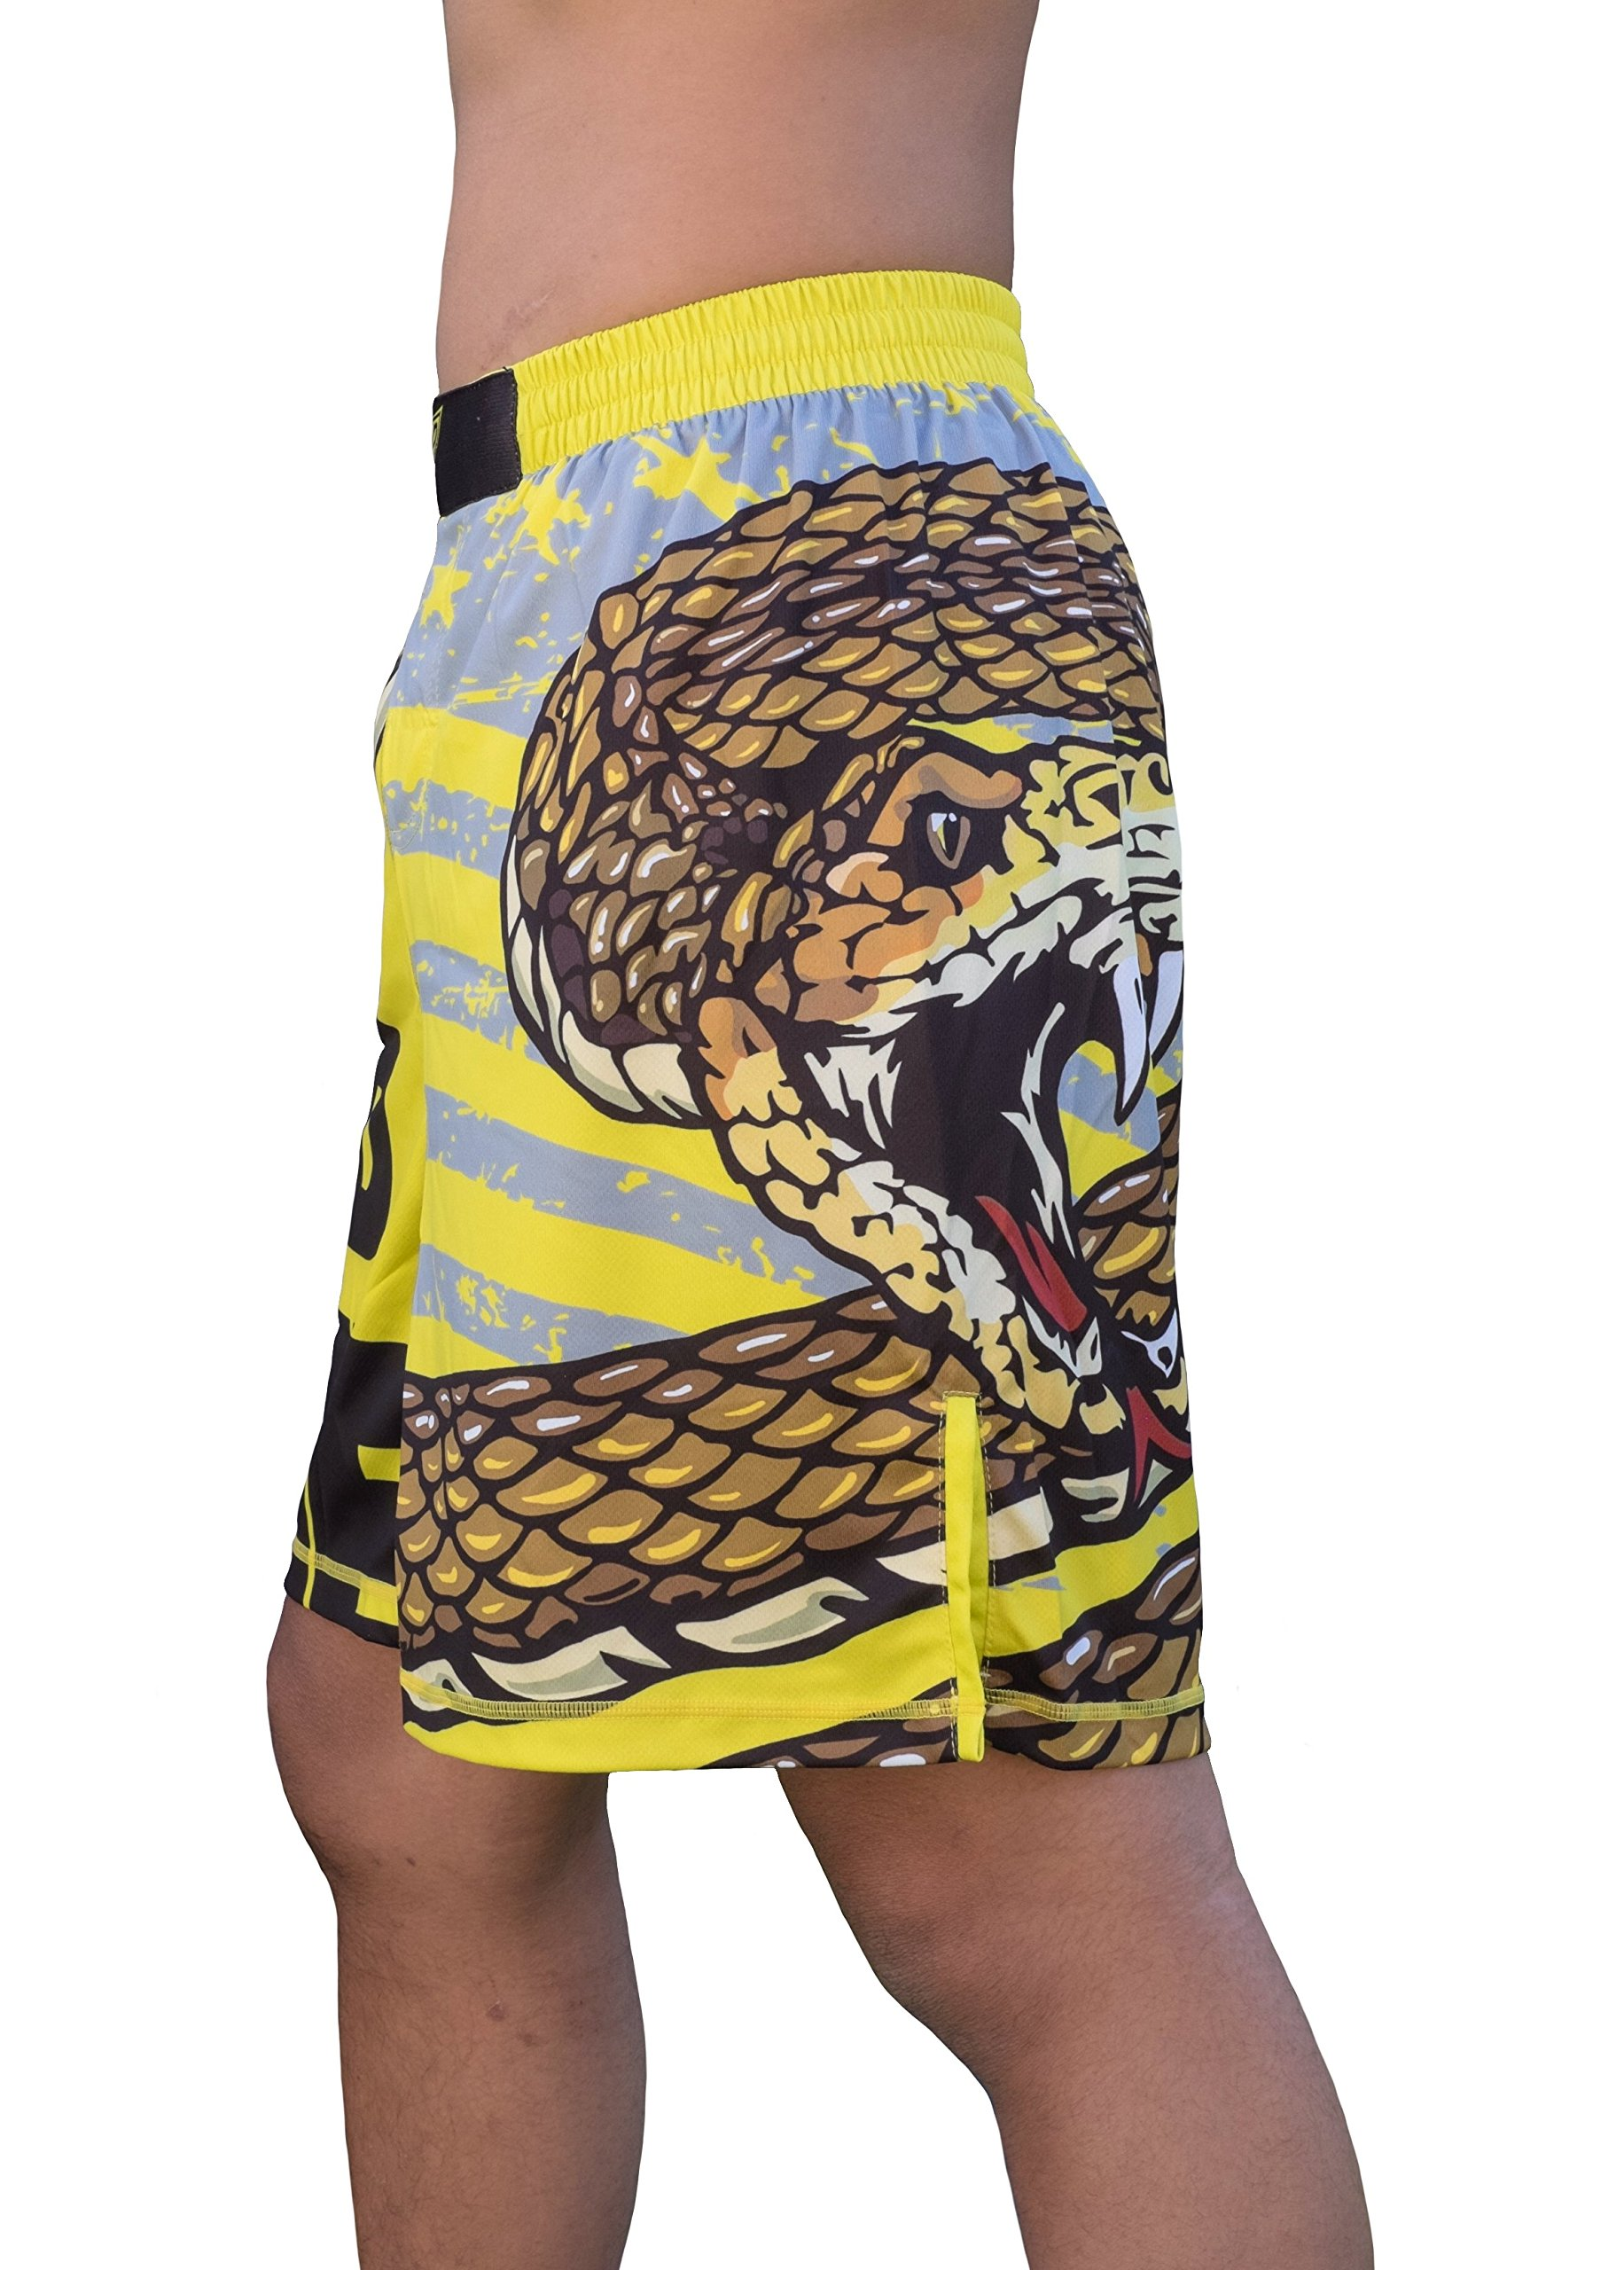 TRI-TITANS Don't Tread on Me! MMA Wrestling Jiu-Jitsu training Fight Shorts - Youths & Mens (Adult S: waist 30''-32'') by TRI-TITANS